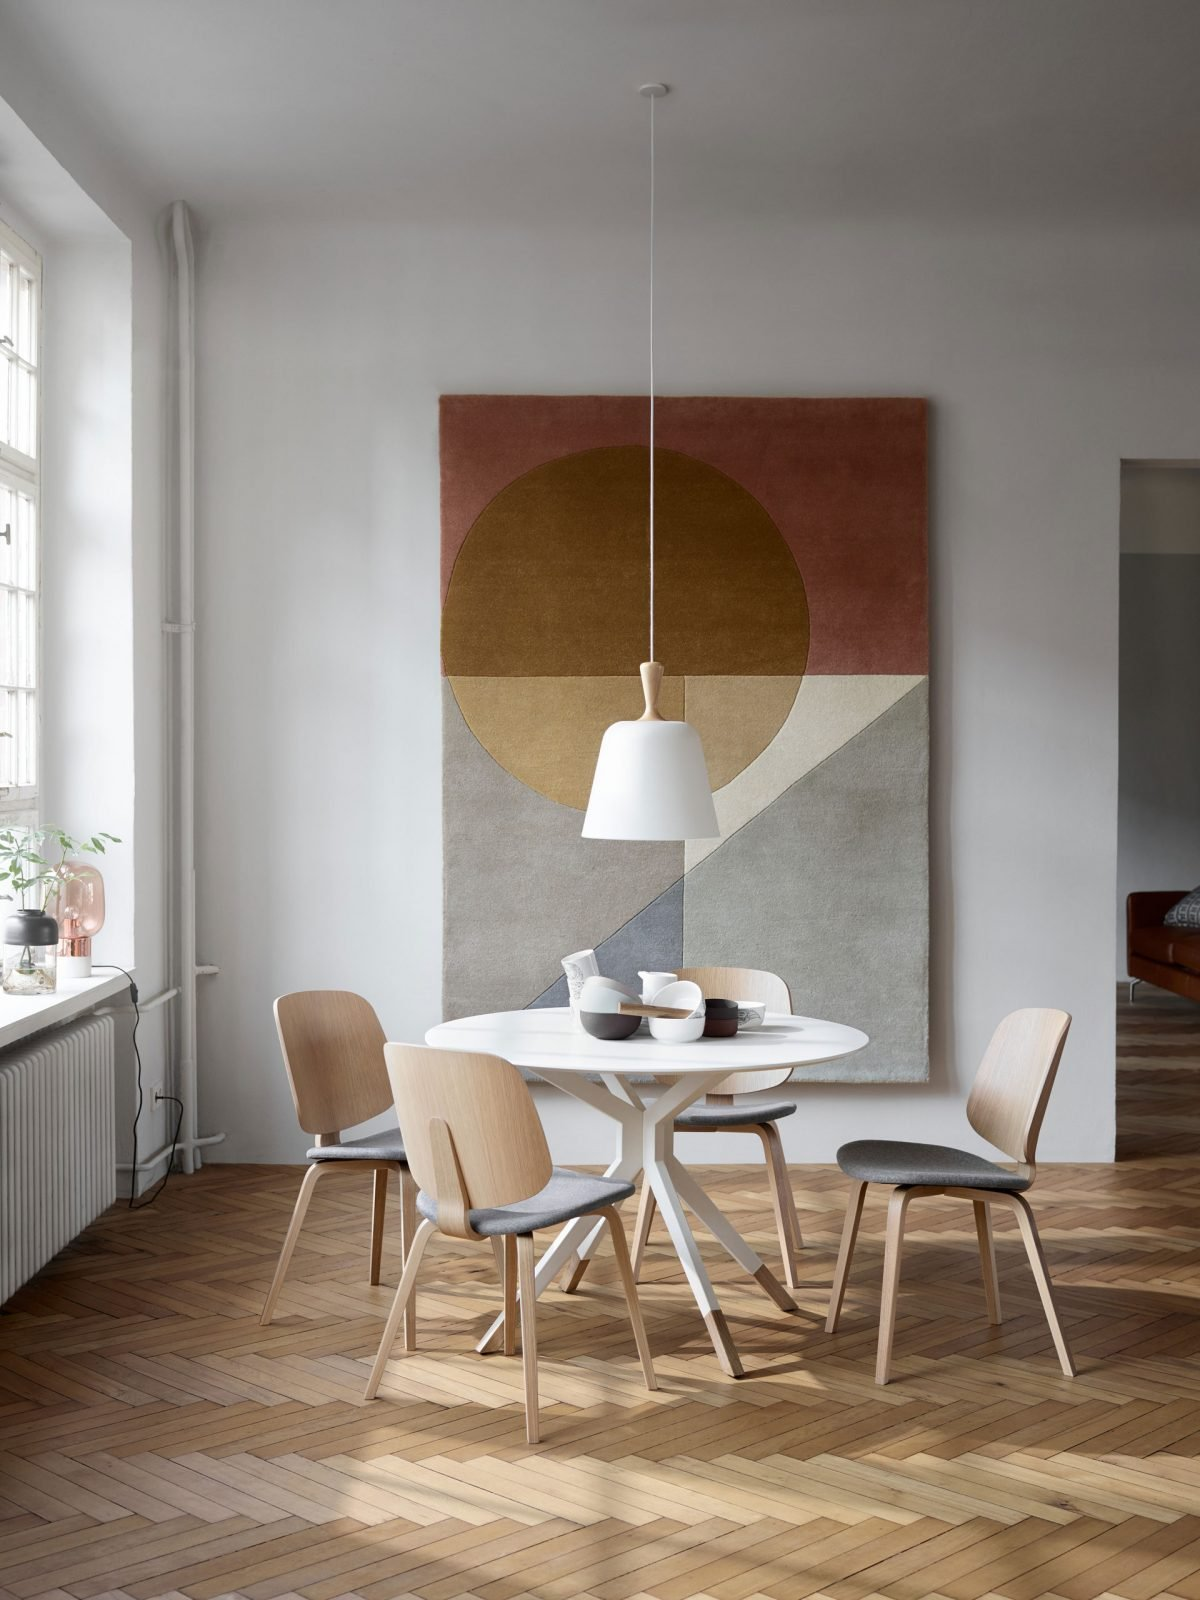 Functional dining for smaller spaces